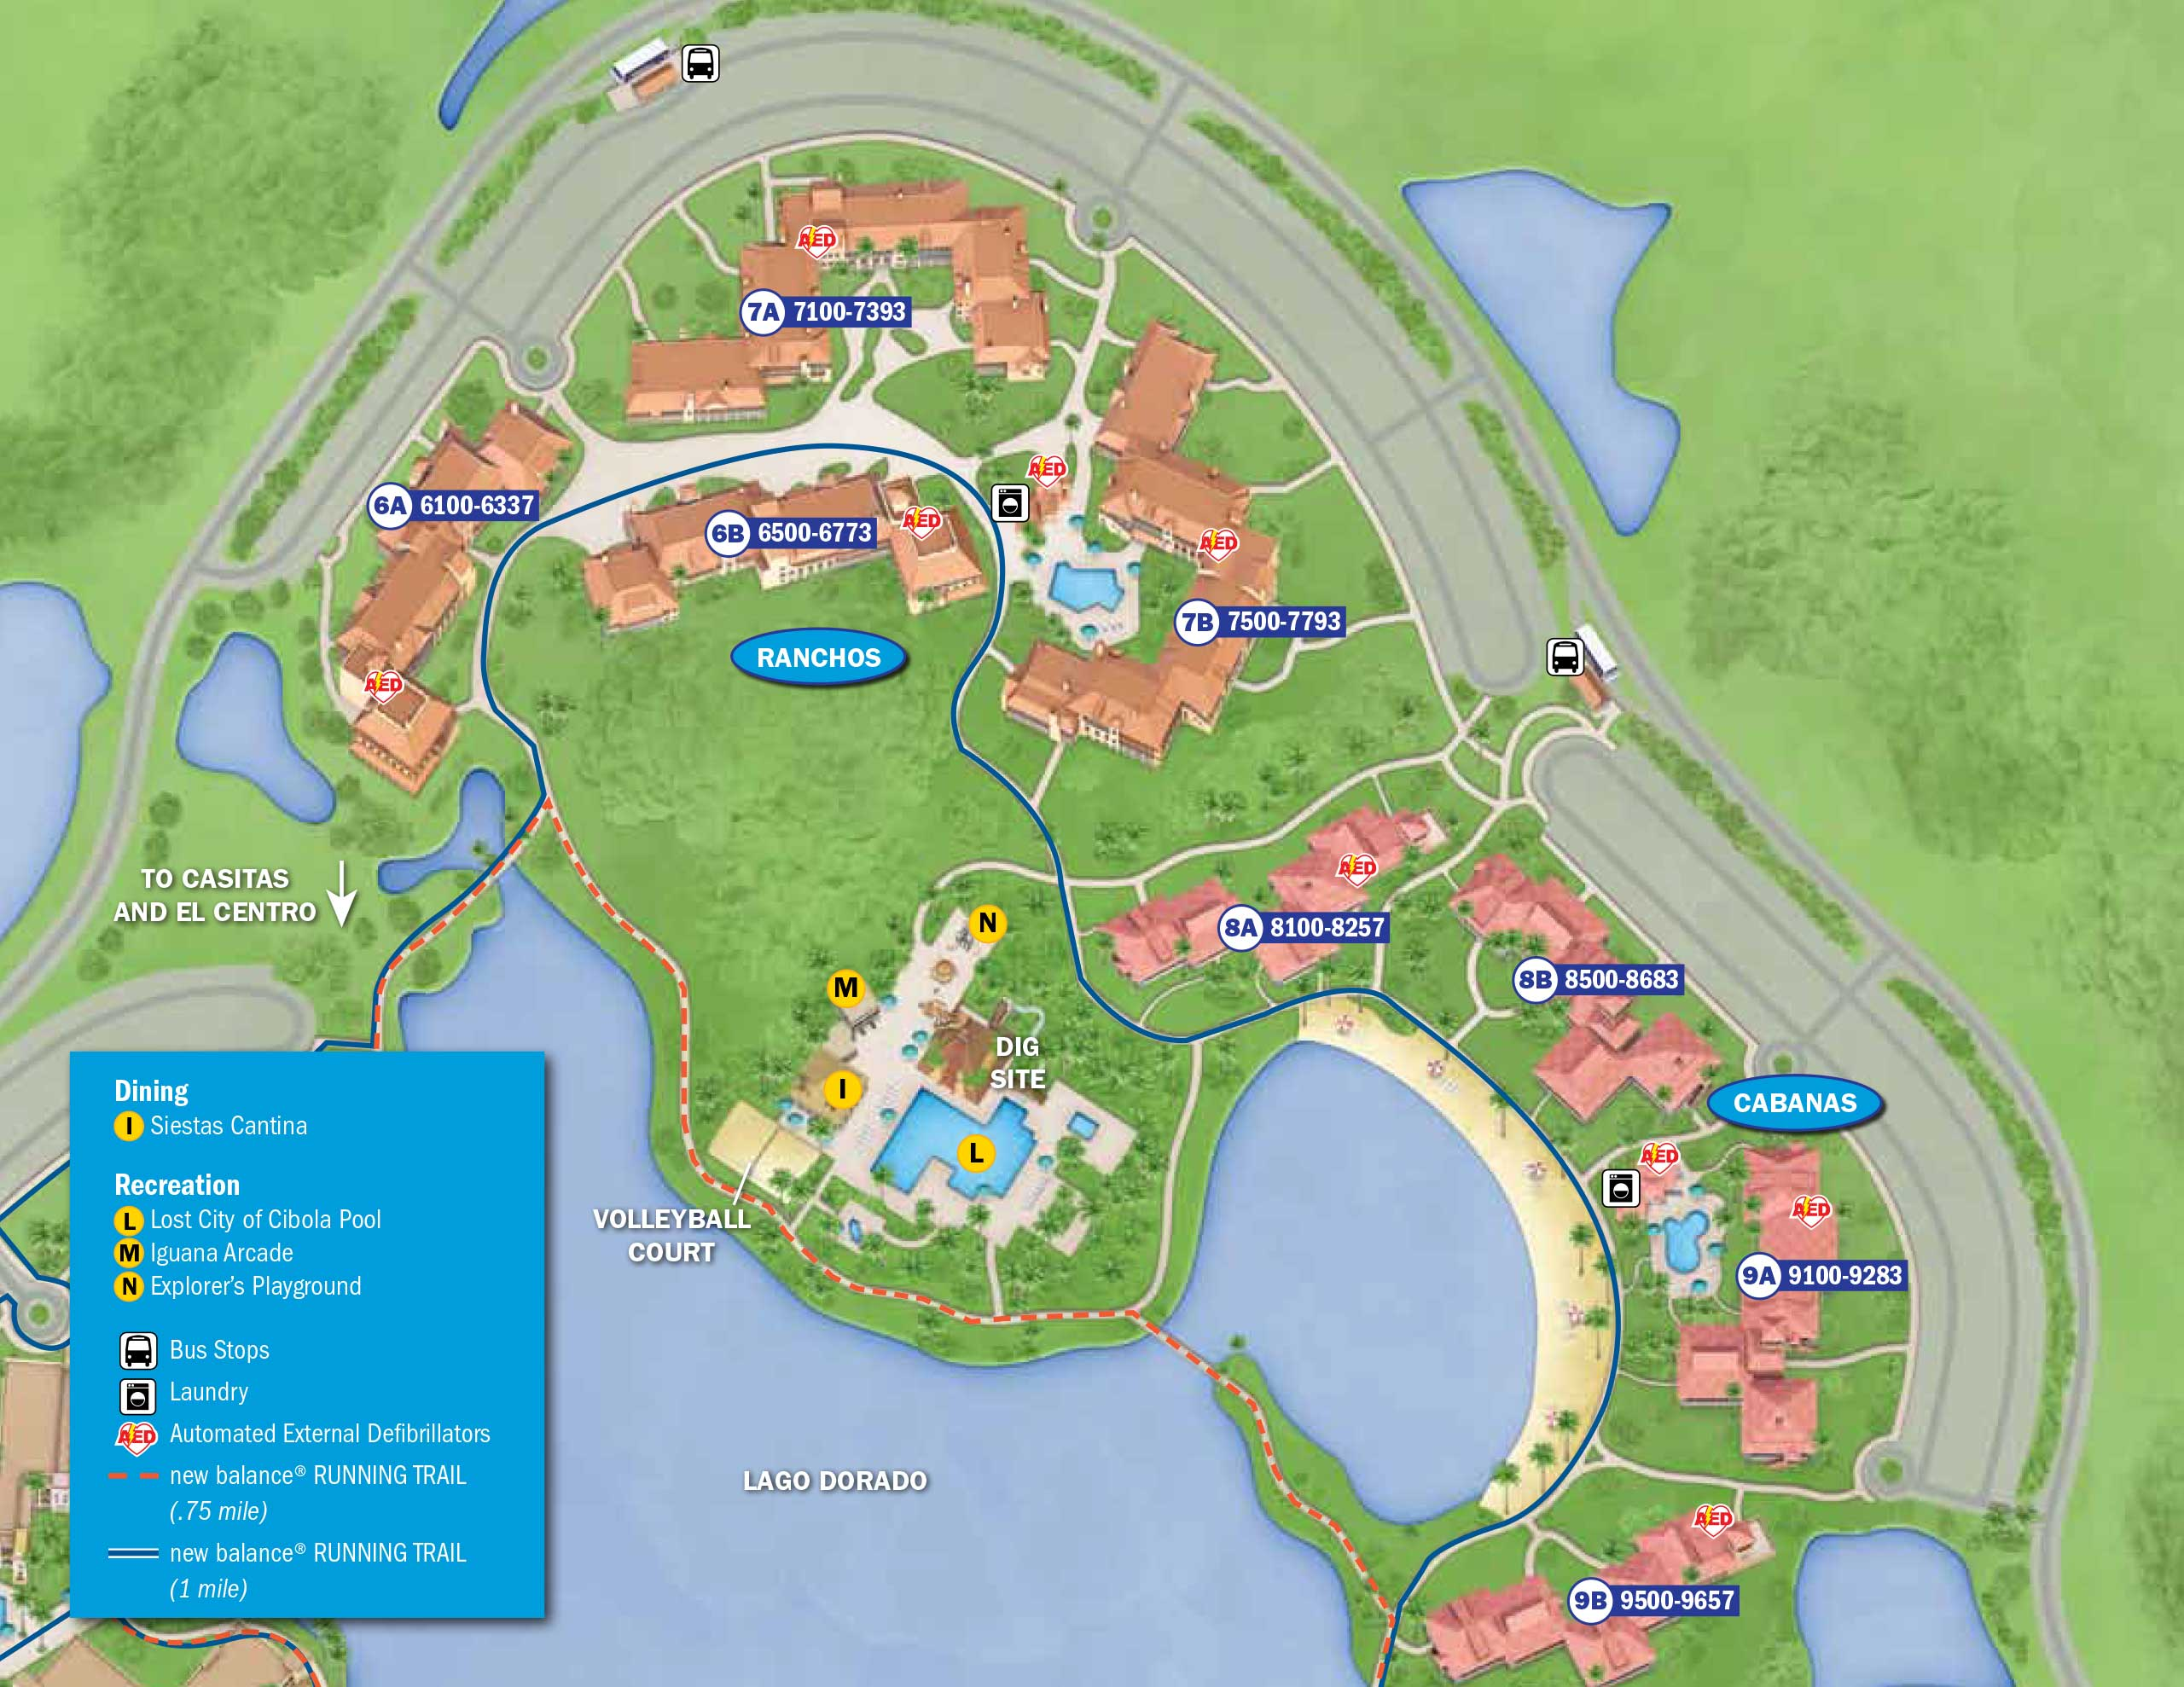 April 2017 Walt Disney World Resort Hotel Maps - Photo 12 of 33